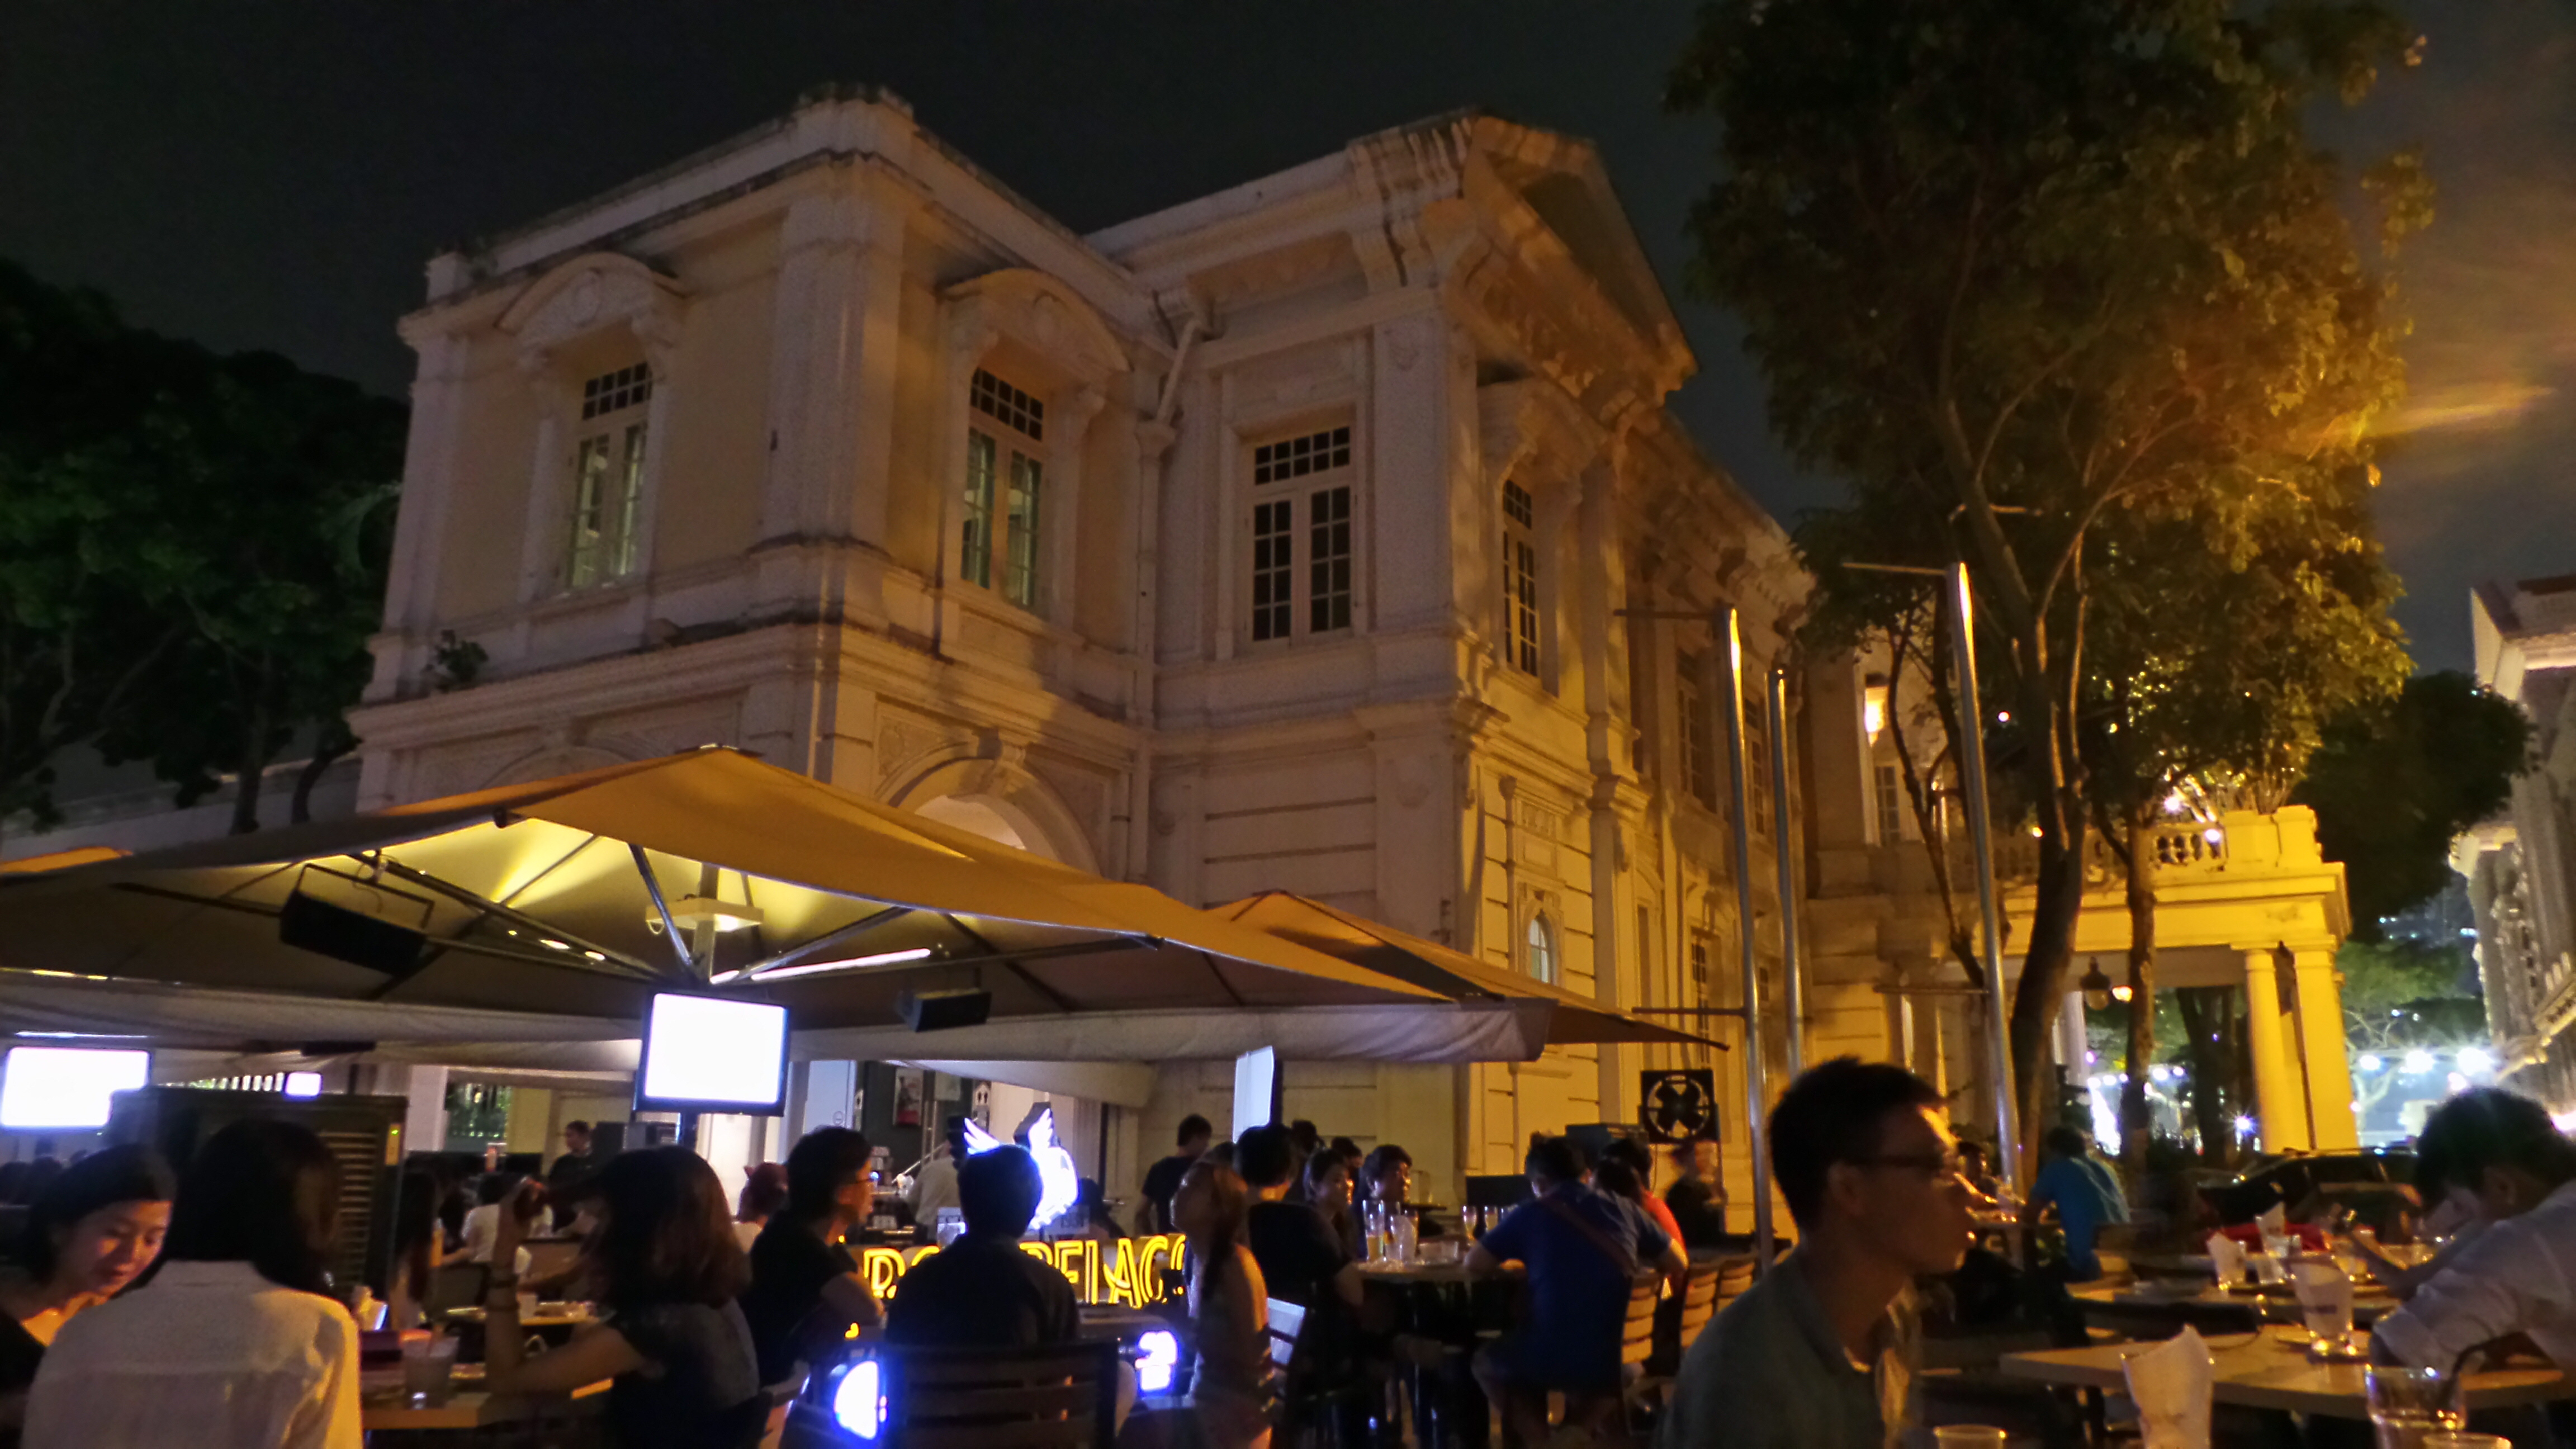 Timbre the art house